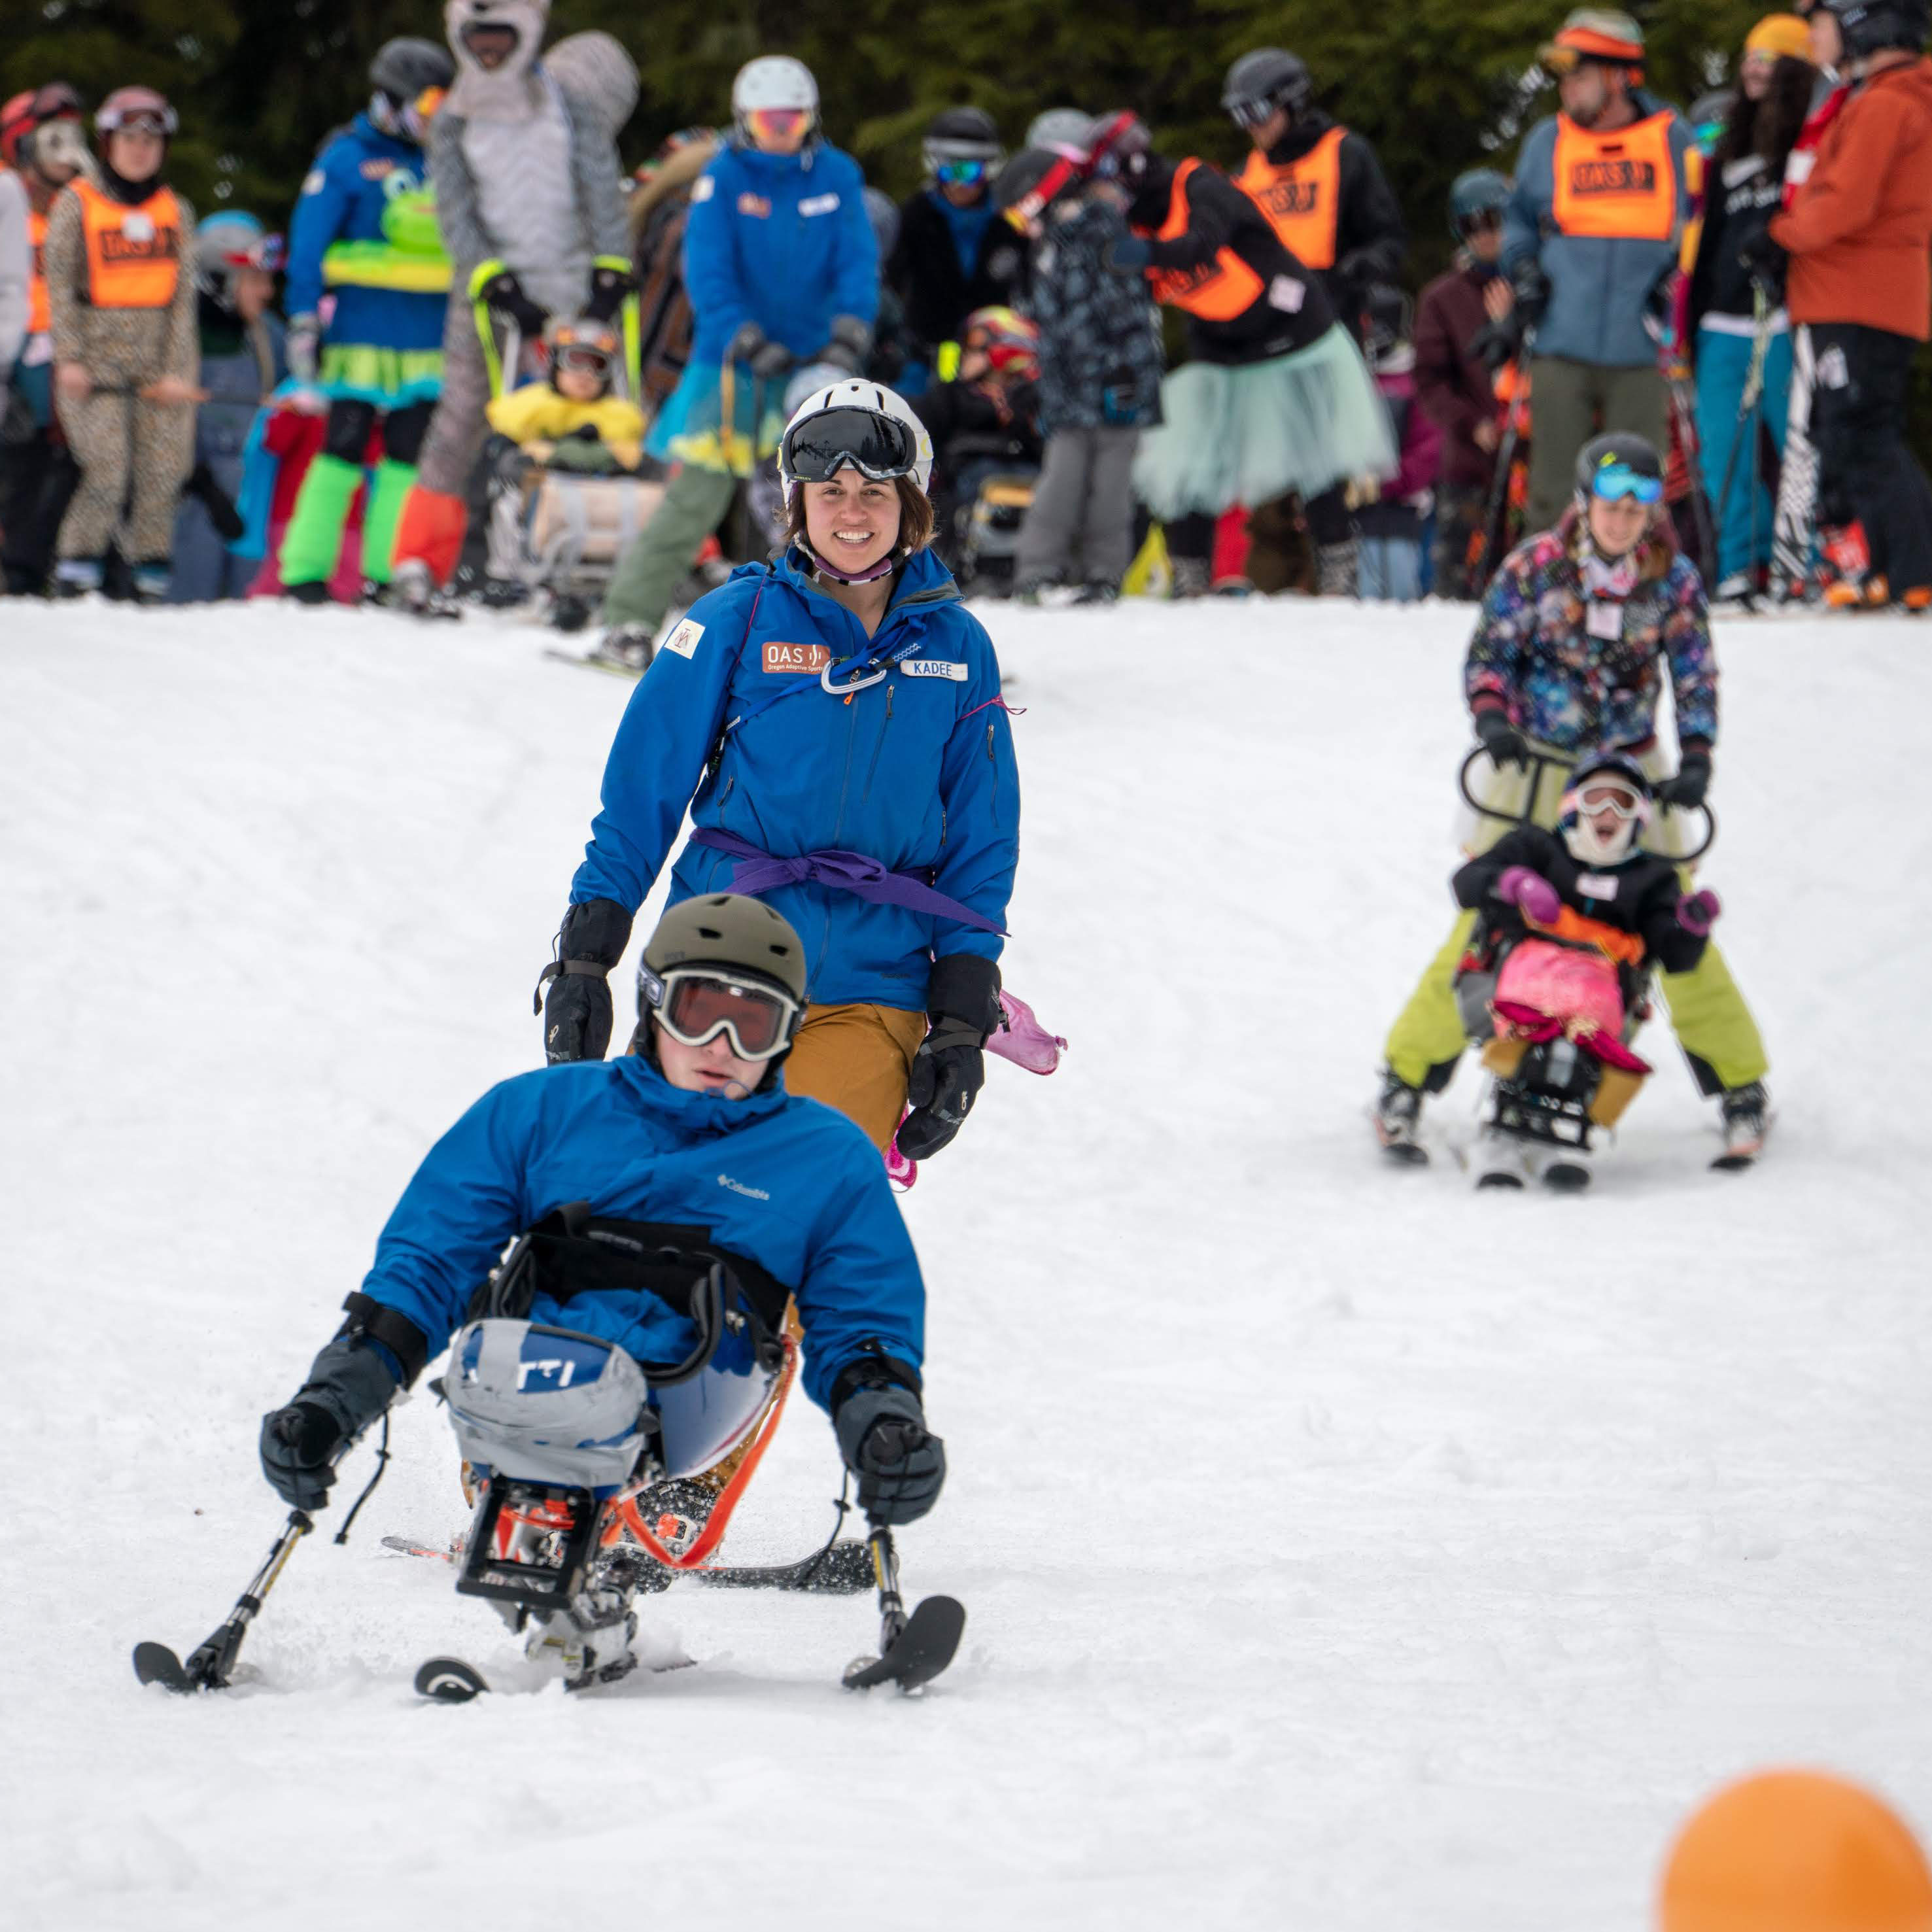 Youth with a disability in a sit ski at Hoodoo ski resort